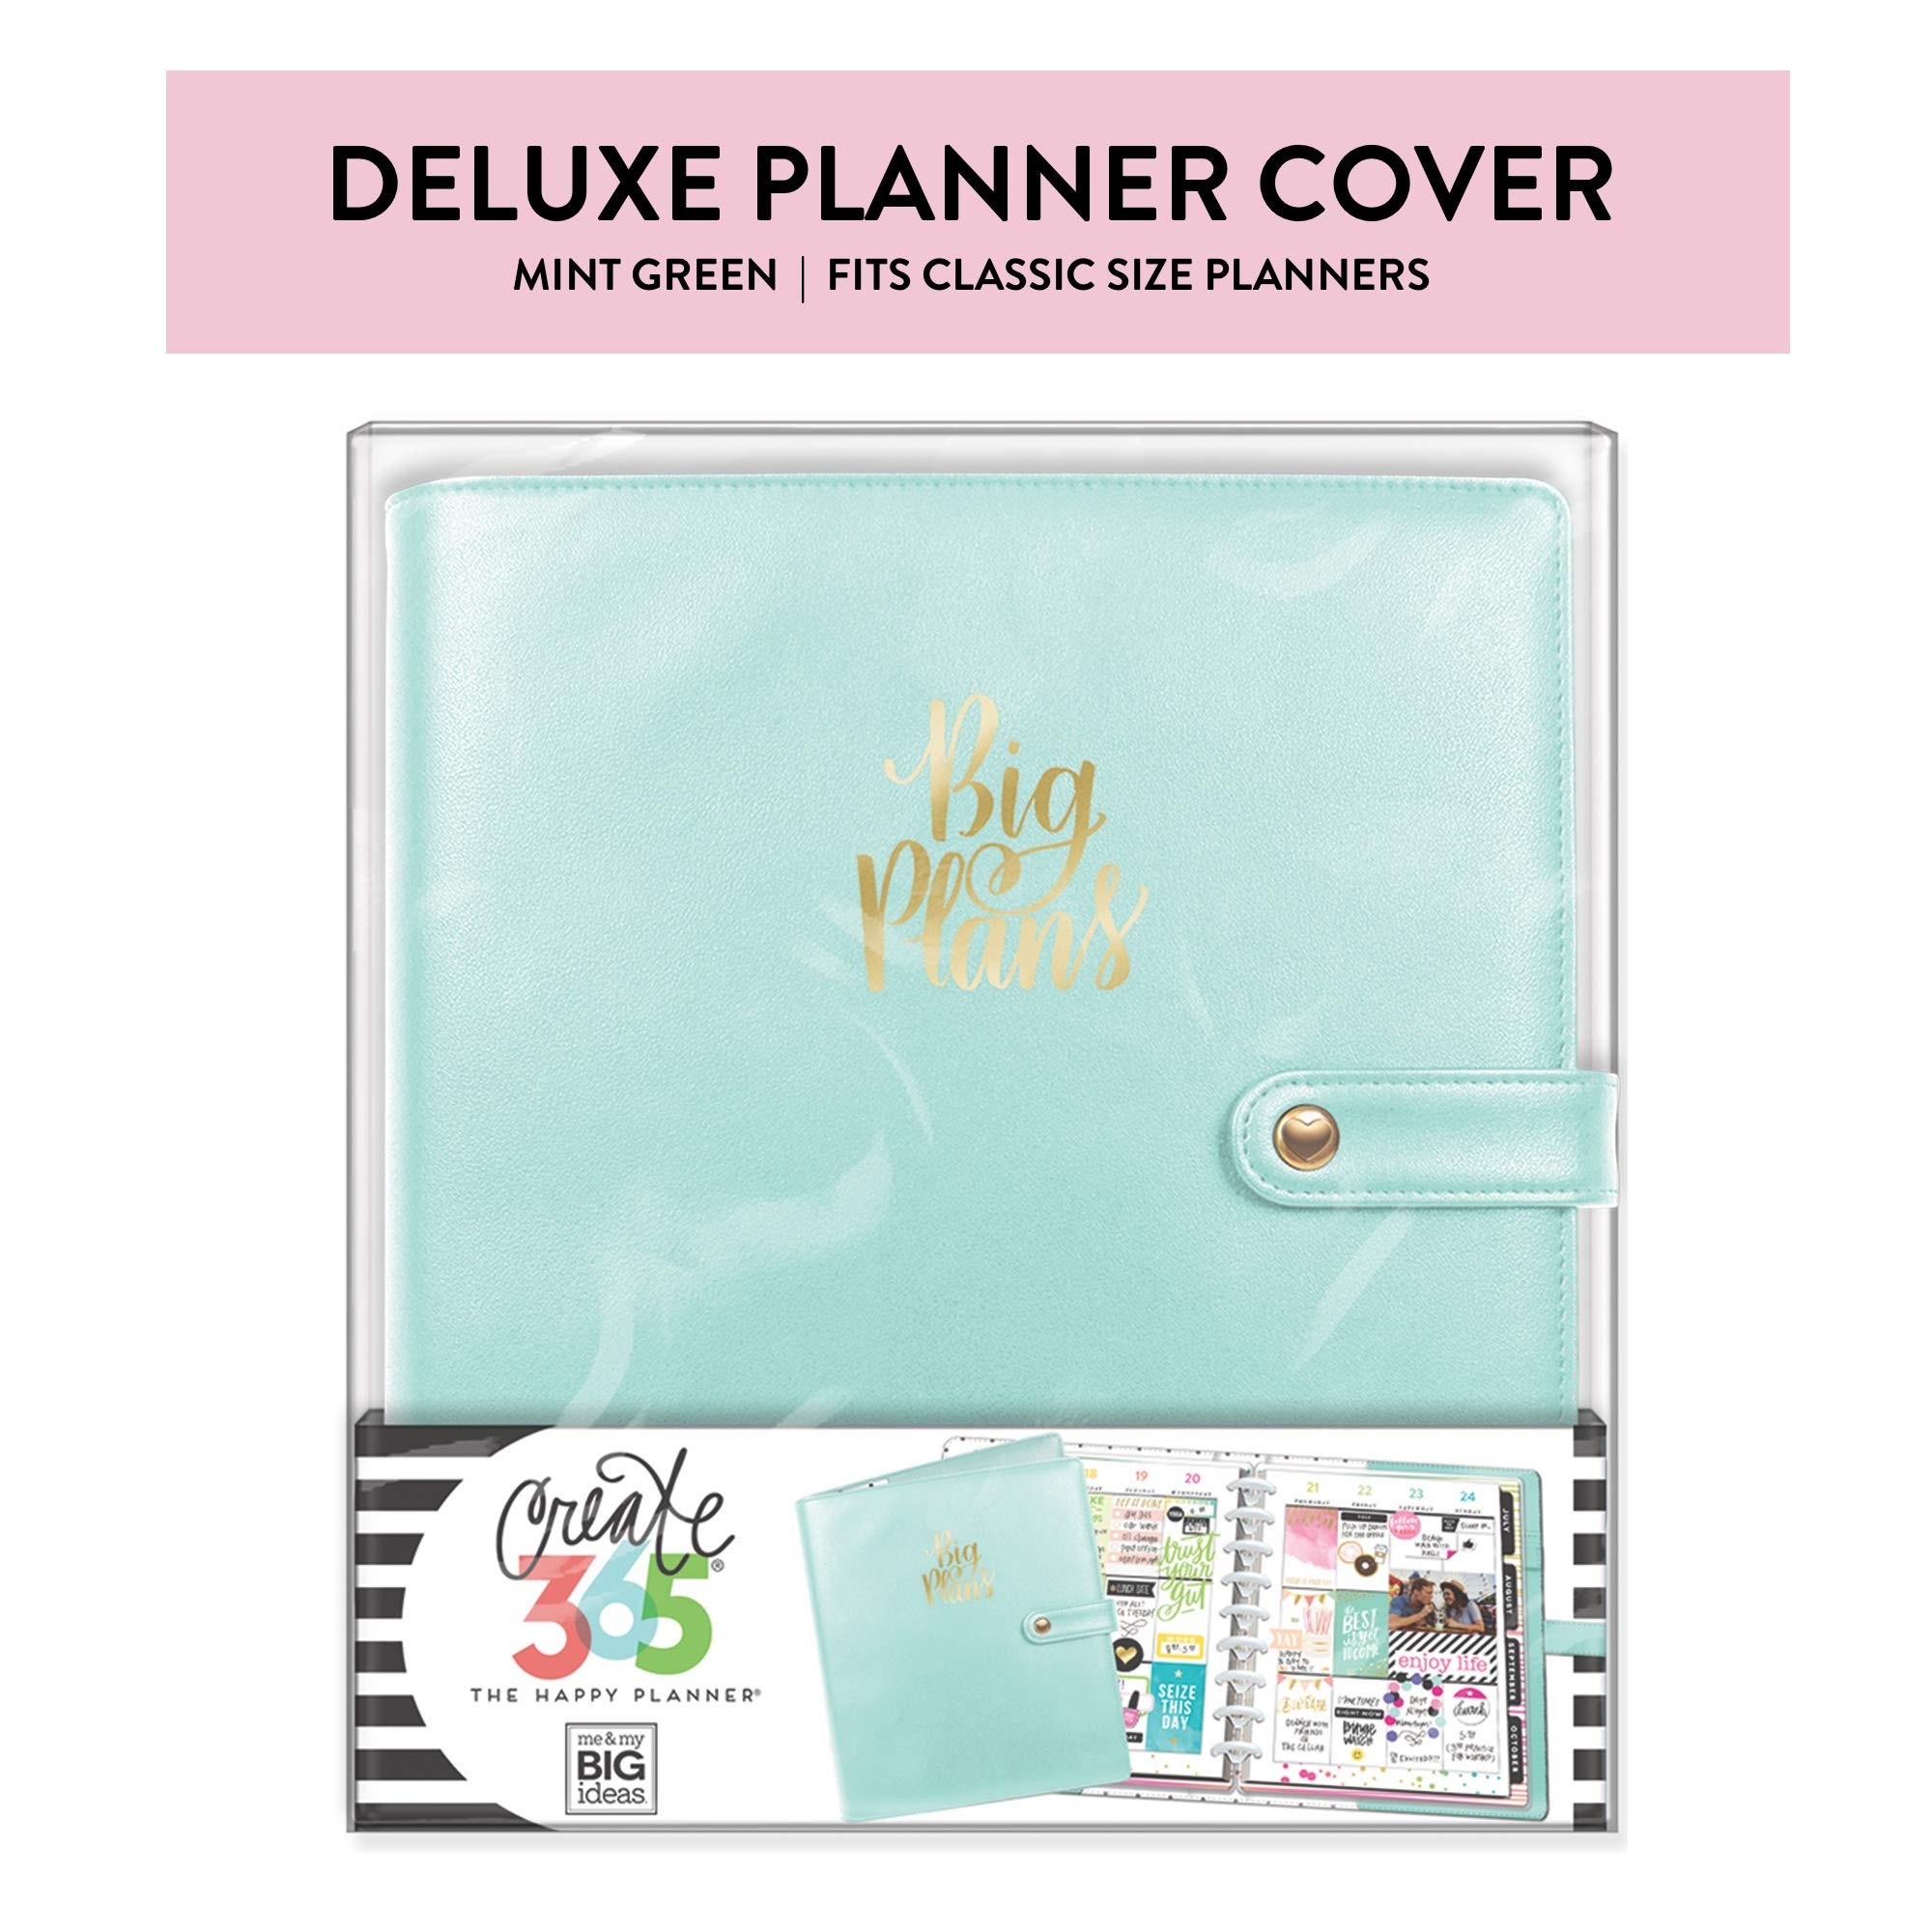 Me & My Big Ideas Classic Deluxe Cover, Mint - The Happy Planner Scrapbooking Supplies - Stylish & Functional - Extra Protection and Storage with Inner Pockets - Includes Pen Holder - Classic Size